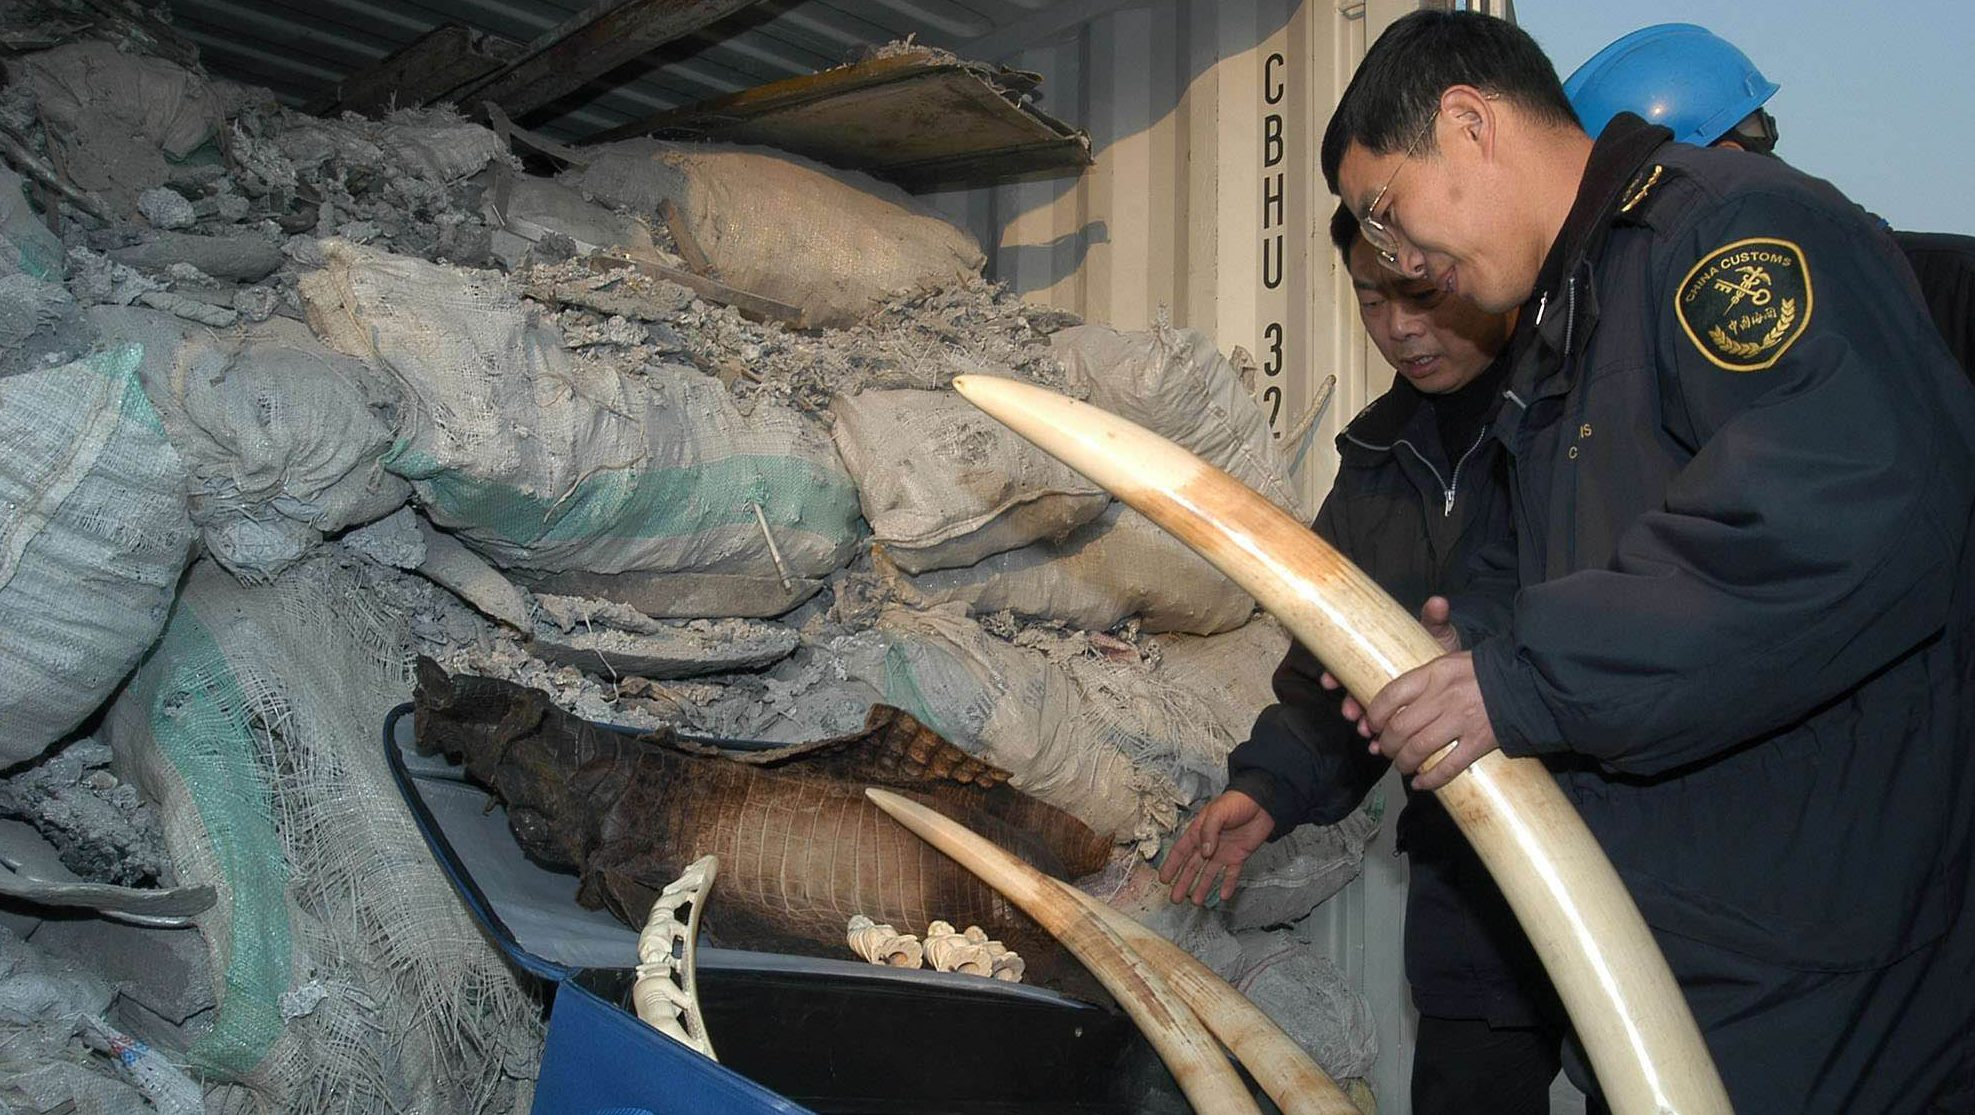 Chinese Customs officers examine ivory tusk and crocodile skins found in a container containing imported aluminum waste in Wenzhou, Zhejiang, Eastern China, Tuesday, Jan 21, 2003. The illegal items were confiscated after it was discovered hidden in the shipment on Monday.  More than 20 kilograms (44 pounds) of the products were found. (AP Photo) ** ONLINE OUT, CHINA OUT **